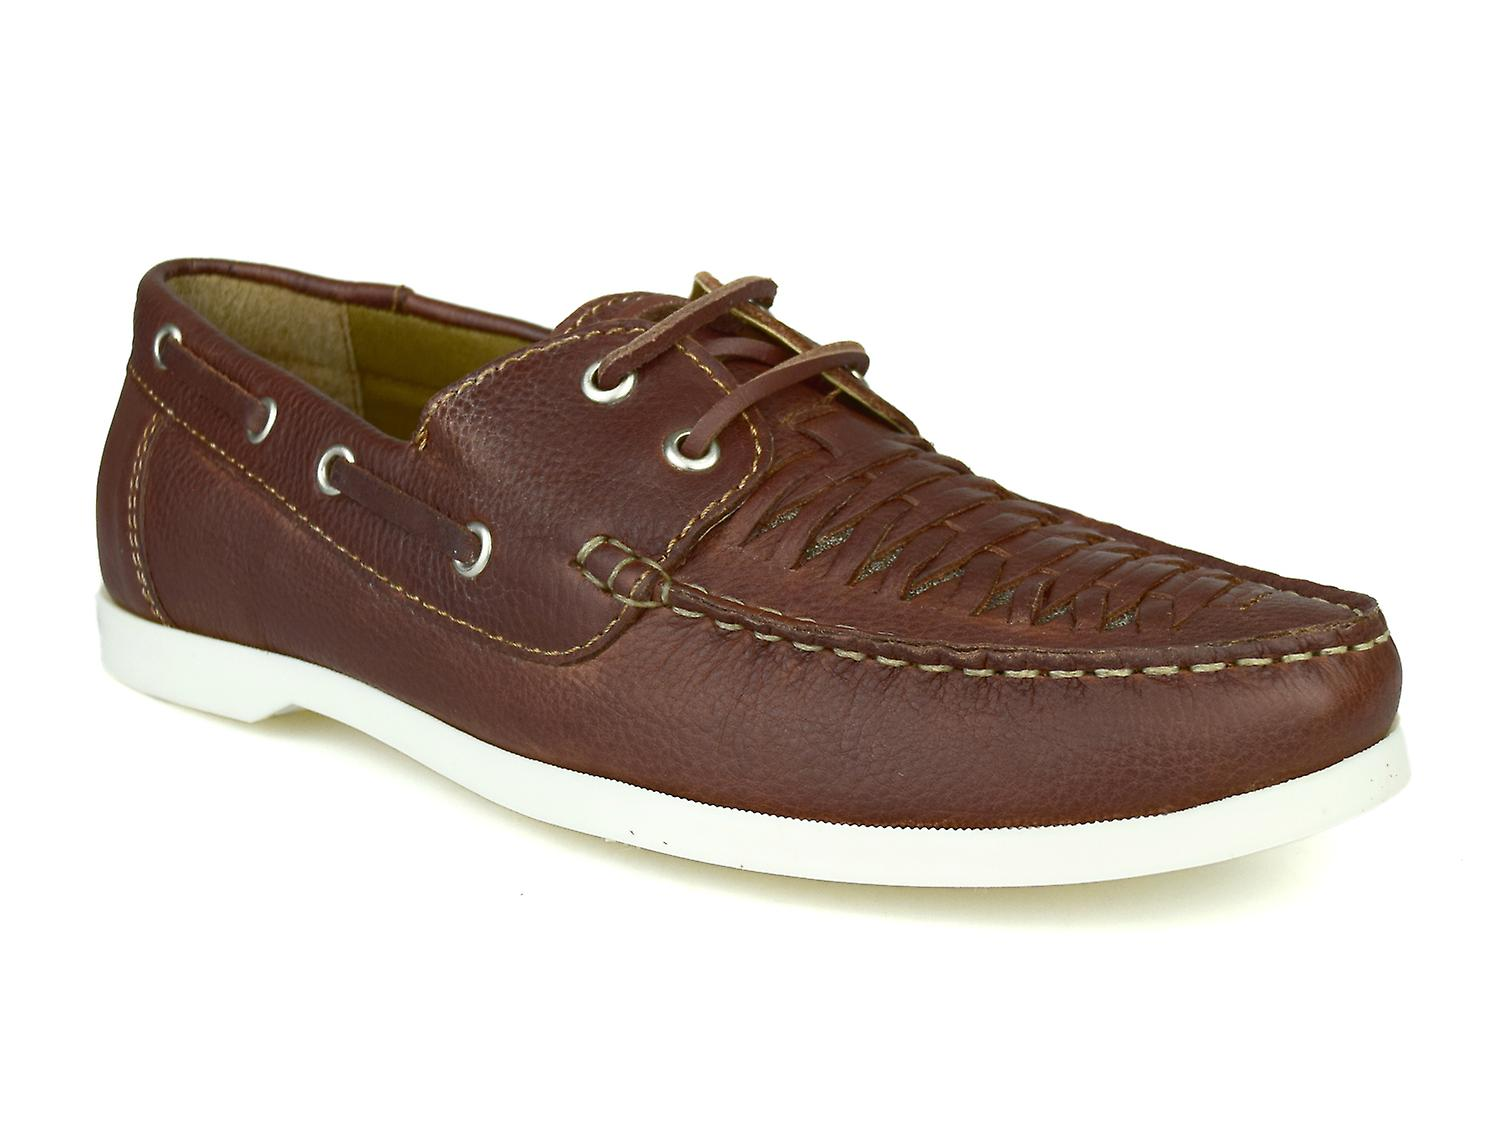 Silver Street London Crew Mens Tan Leather Boat Shoes